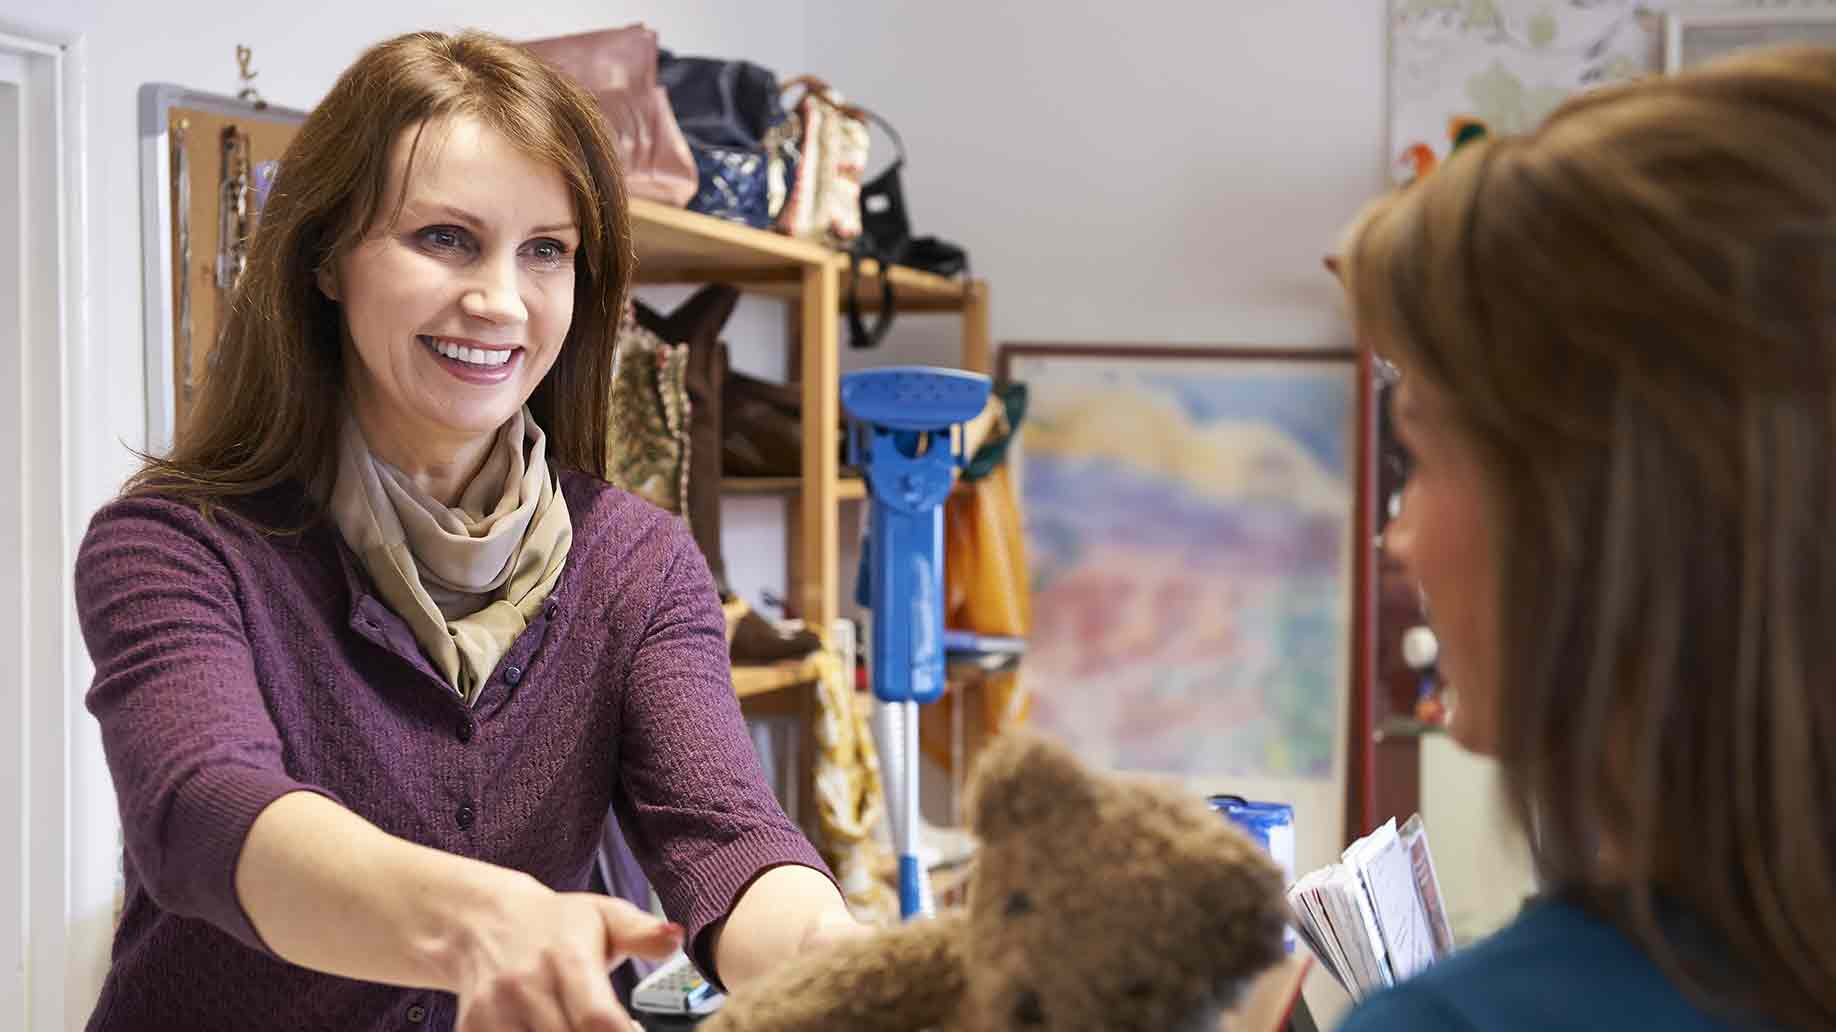 woman donating unwanted items charity shop